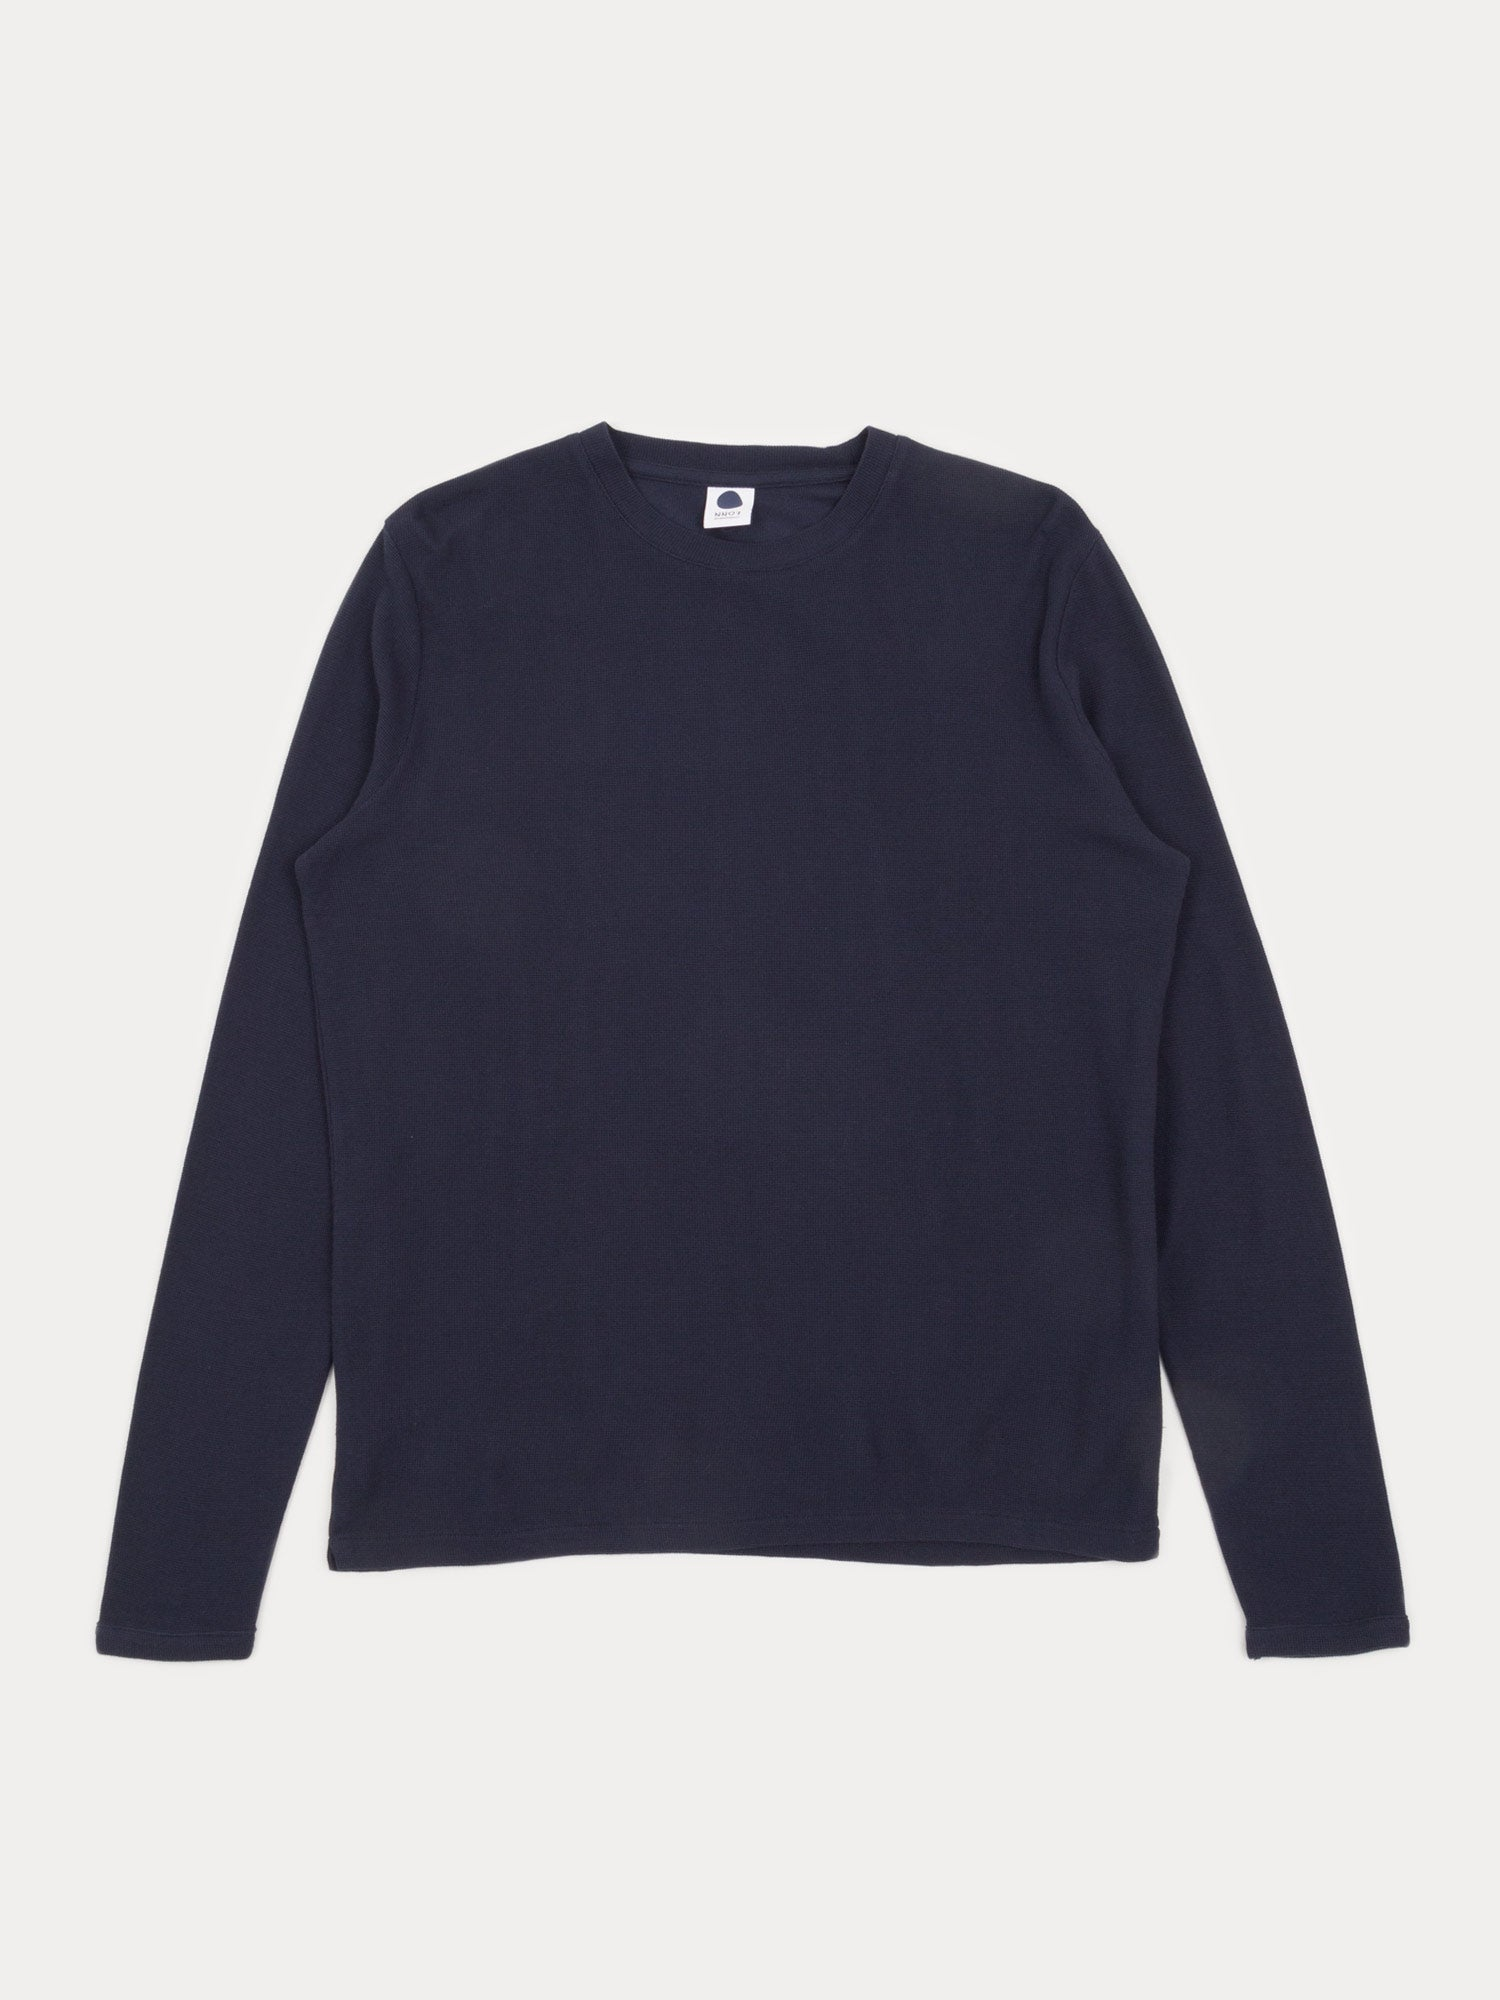 NN07 Clive Long Sleeve T-Shirt (Navy Blue)